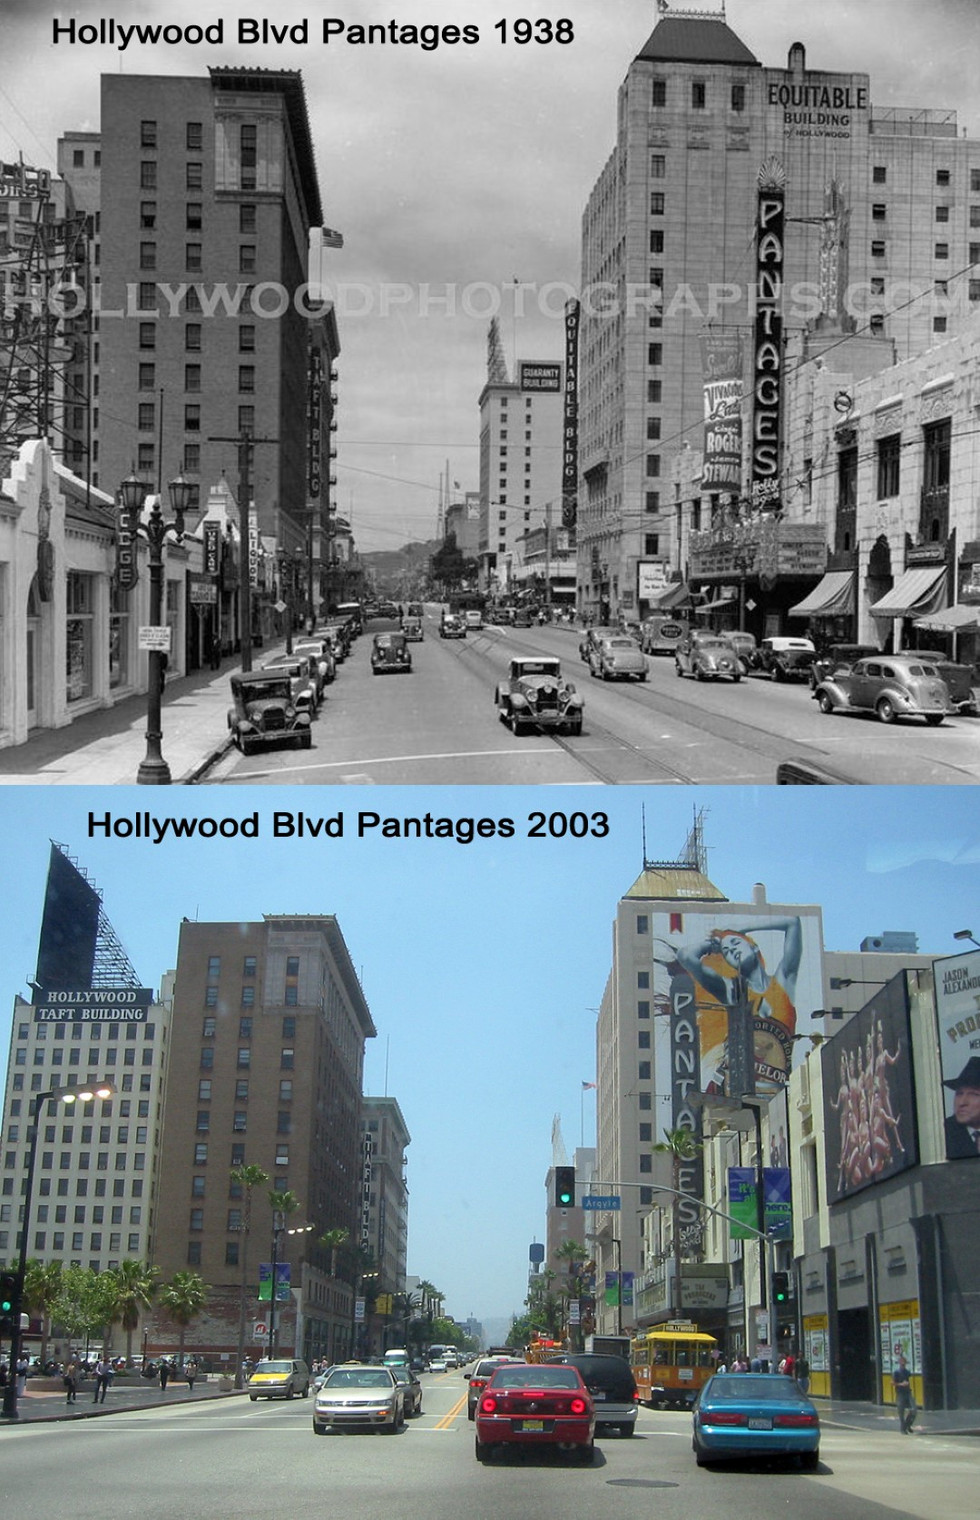 Hollywood blvd Pantages 1938 & 2003